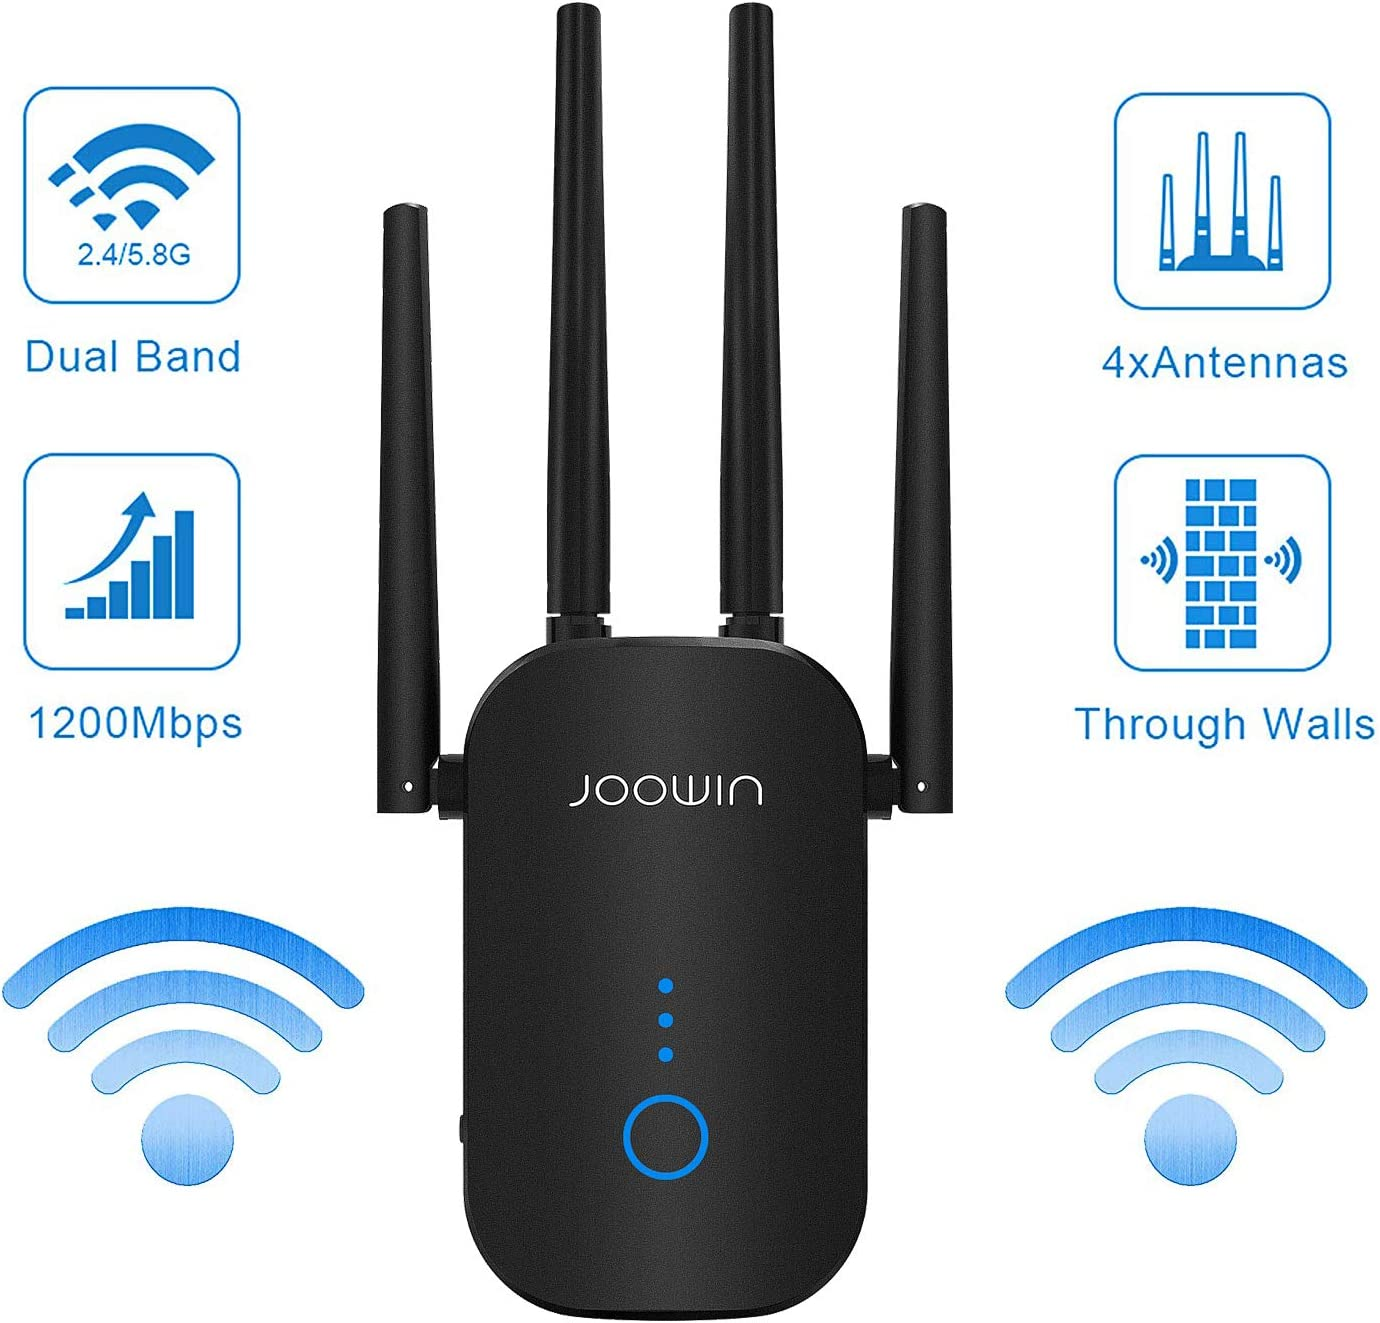 WiFi Range Extender | Up to 1200Mbps | WiFi Extender, WiFi Repeater, WiFi Signal Booster, Access Point | Easy Set-Up | External Antennas & Compact Designed Internet Booster